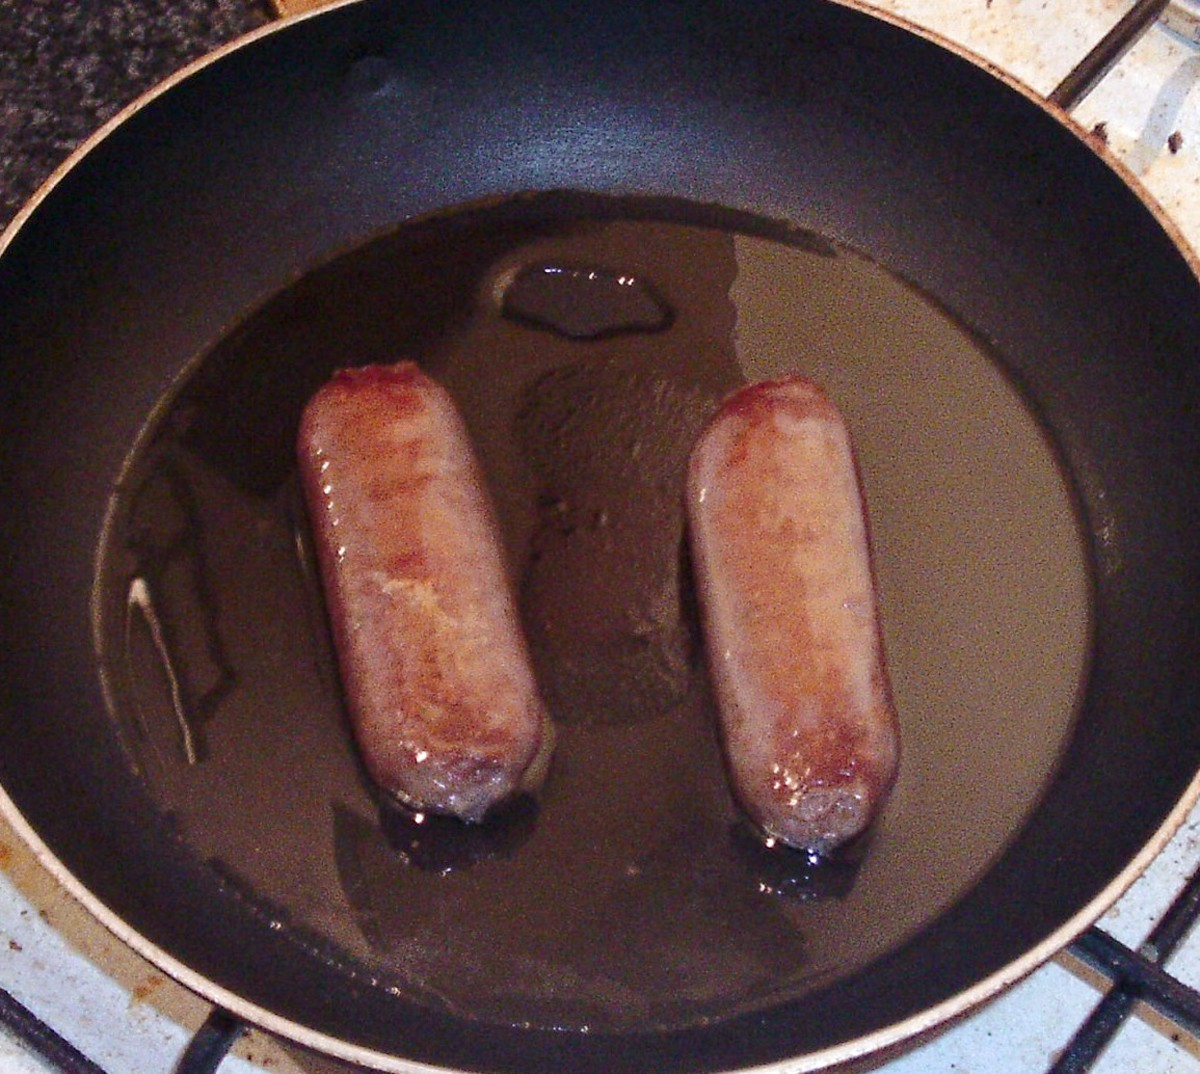 Venison sausages should be turned frequently as they are gently fried